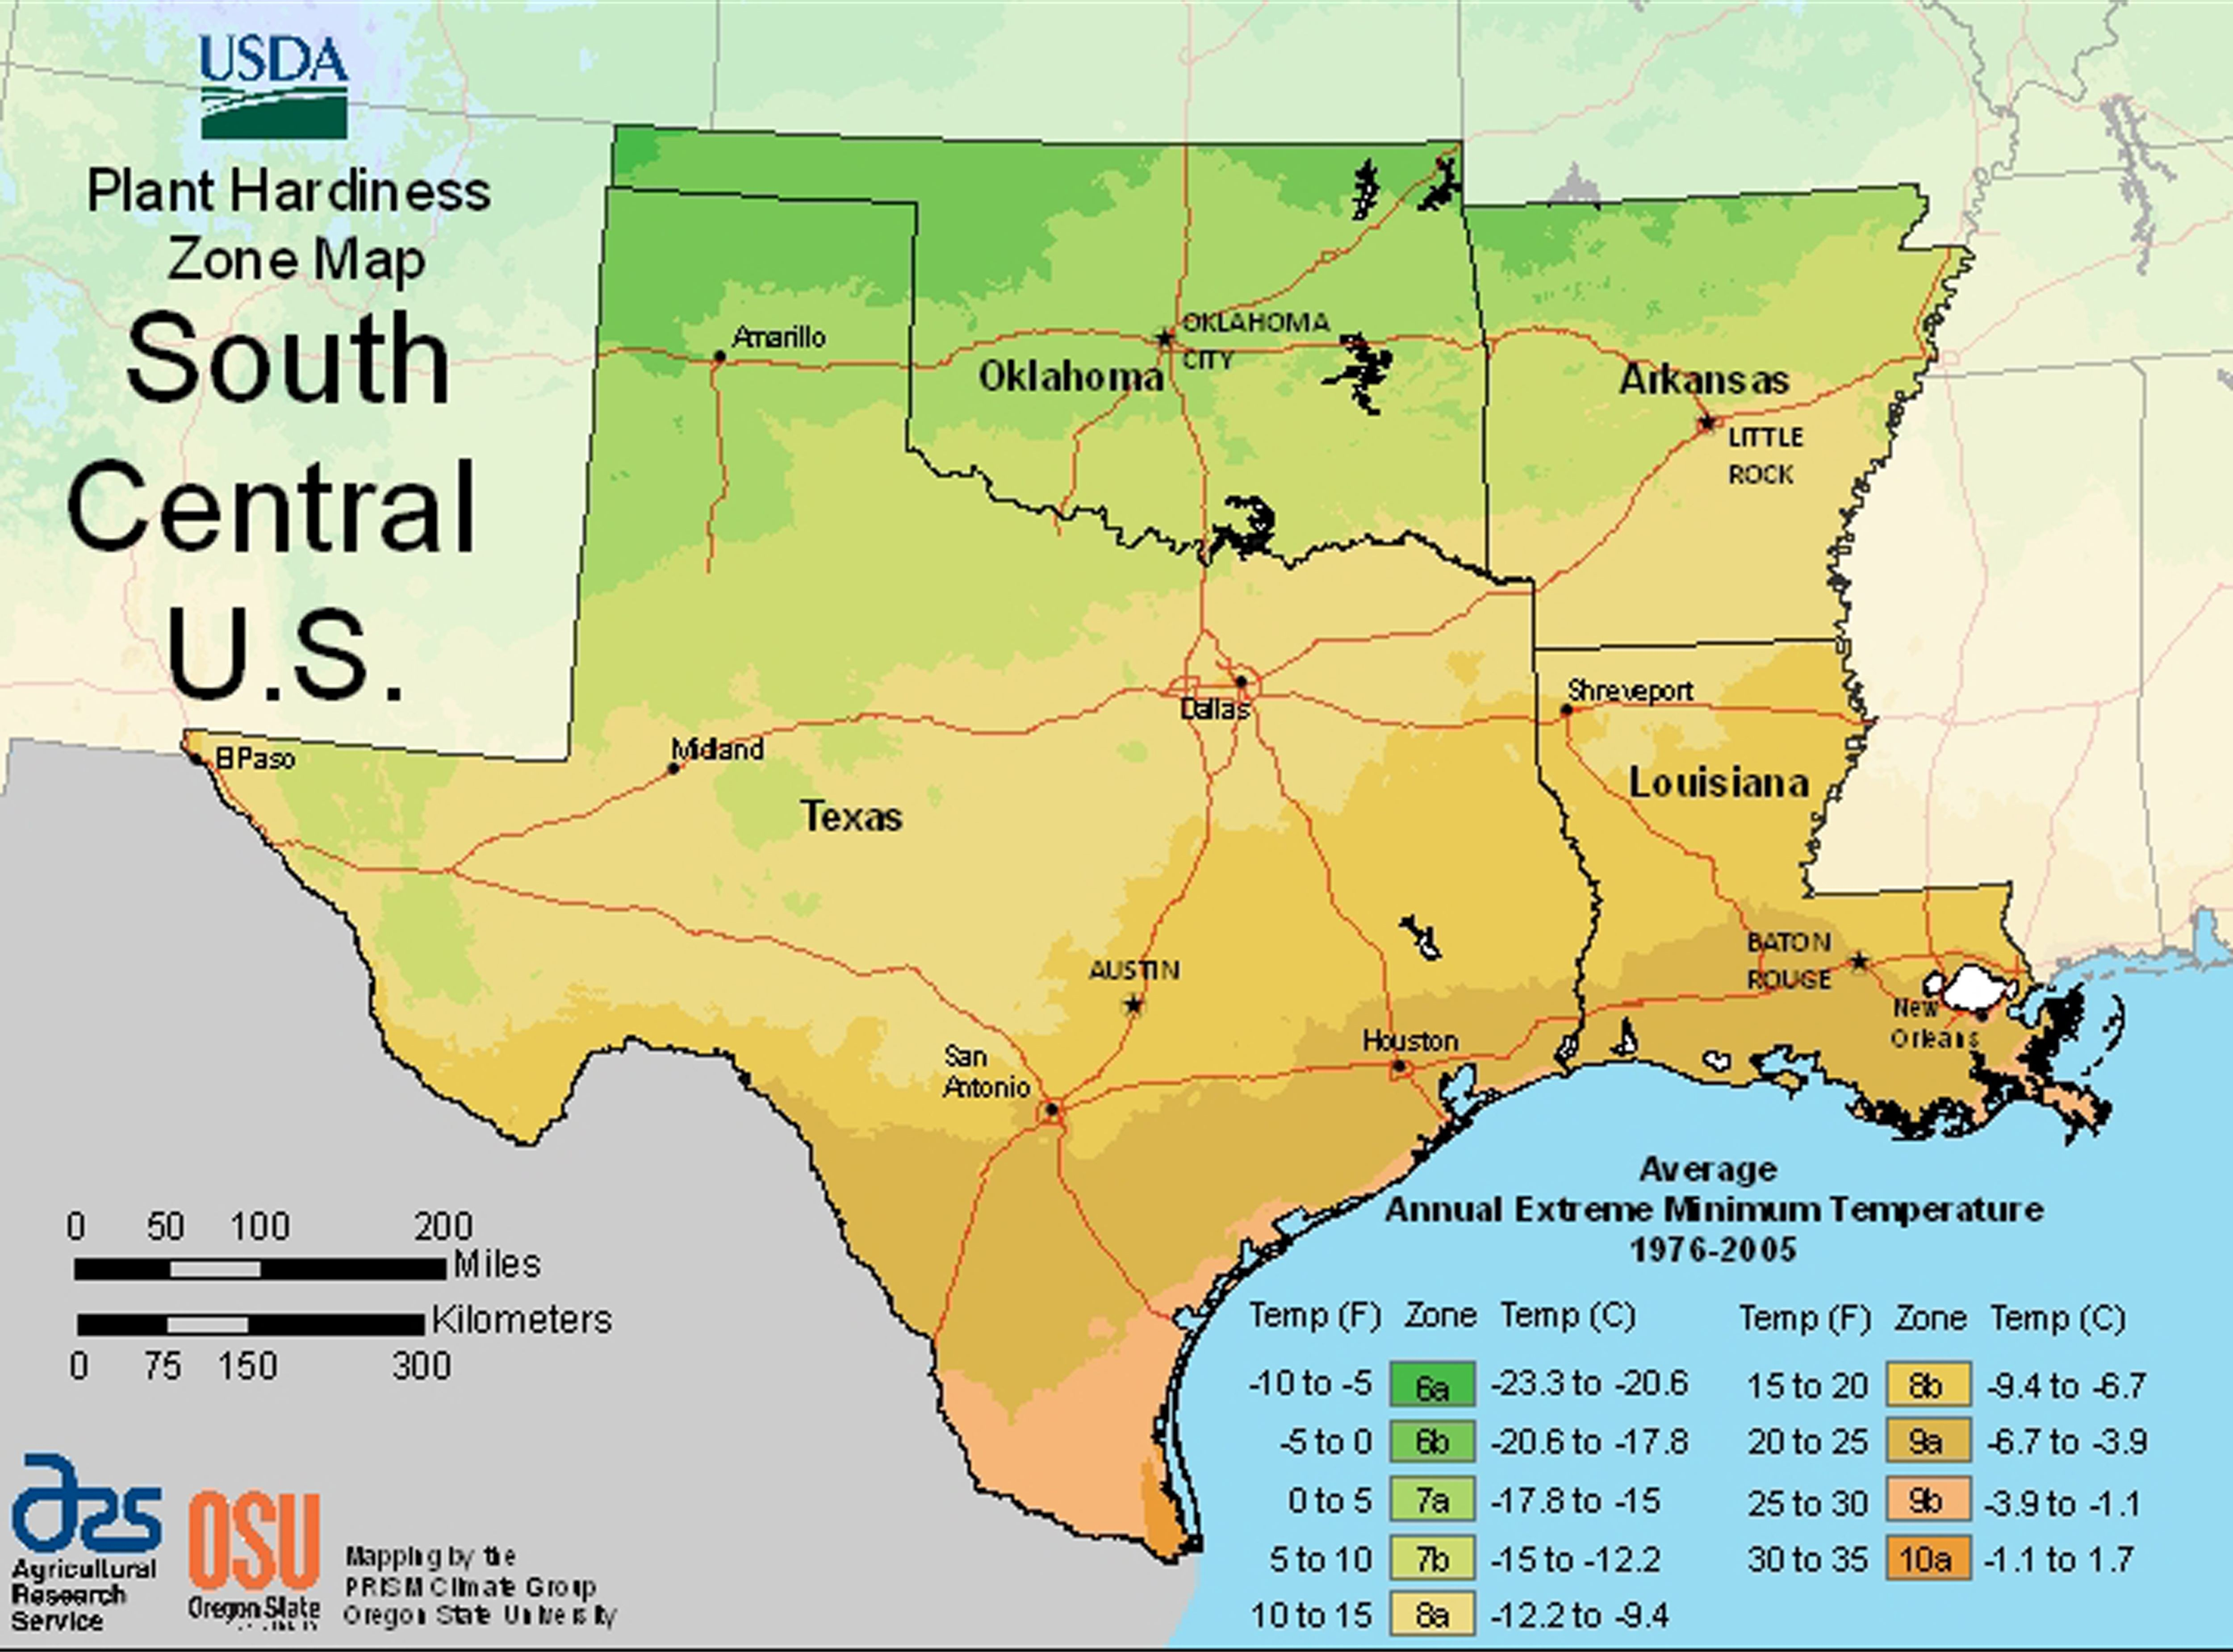 Us Growing Zone Map Printable Planting Zone Map Elegant Us Climate - Texas Planting Zones Map